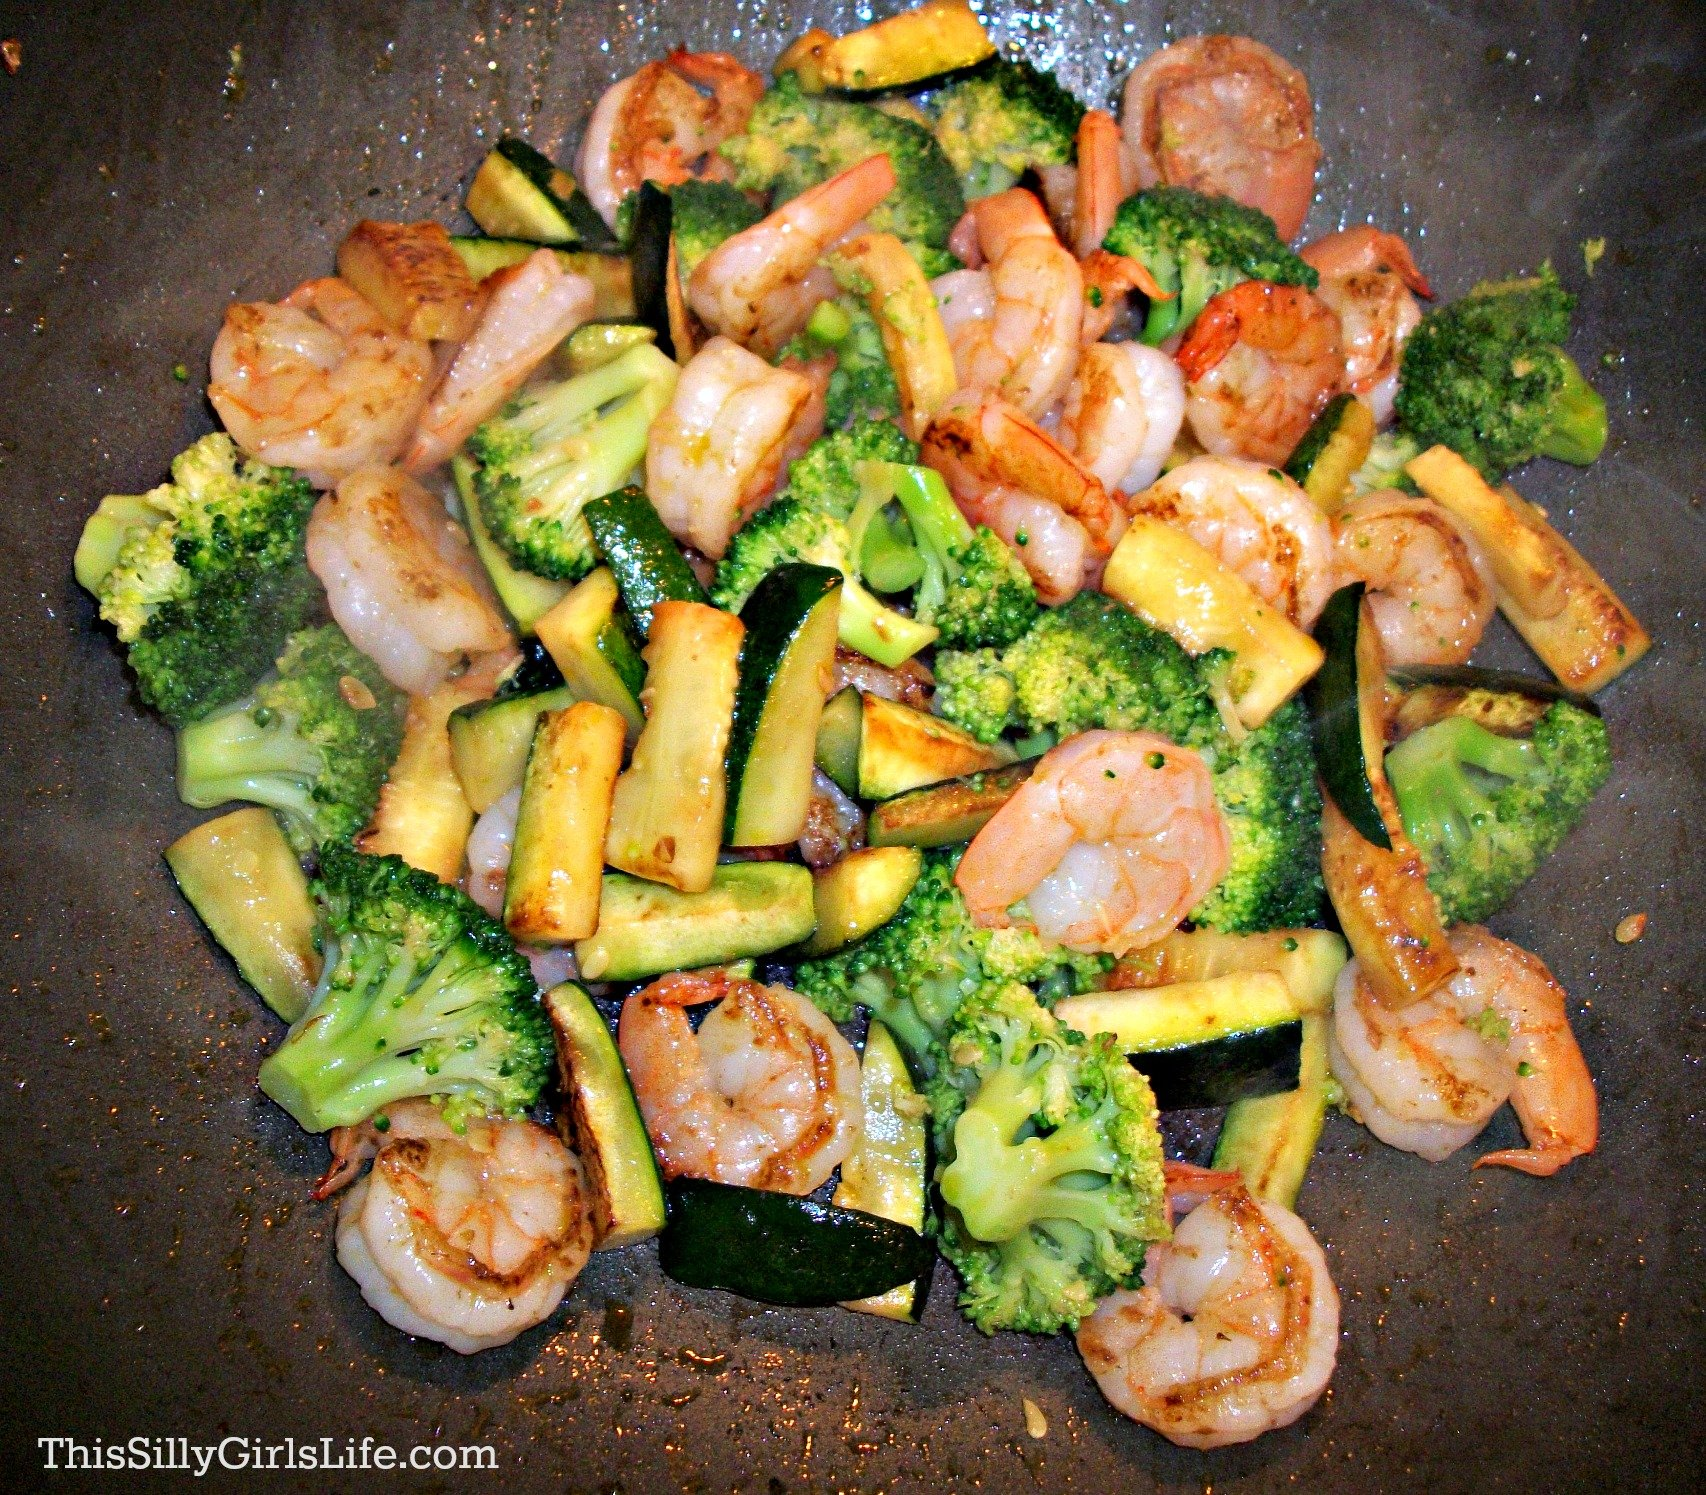 Honey Garlic Shrimp Stir-Fry recipe from ThisSillyGirlsLife.com